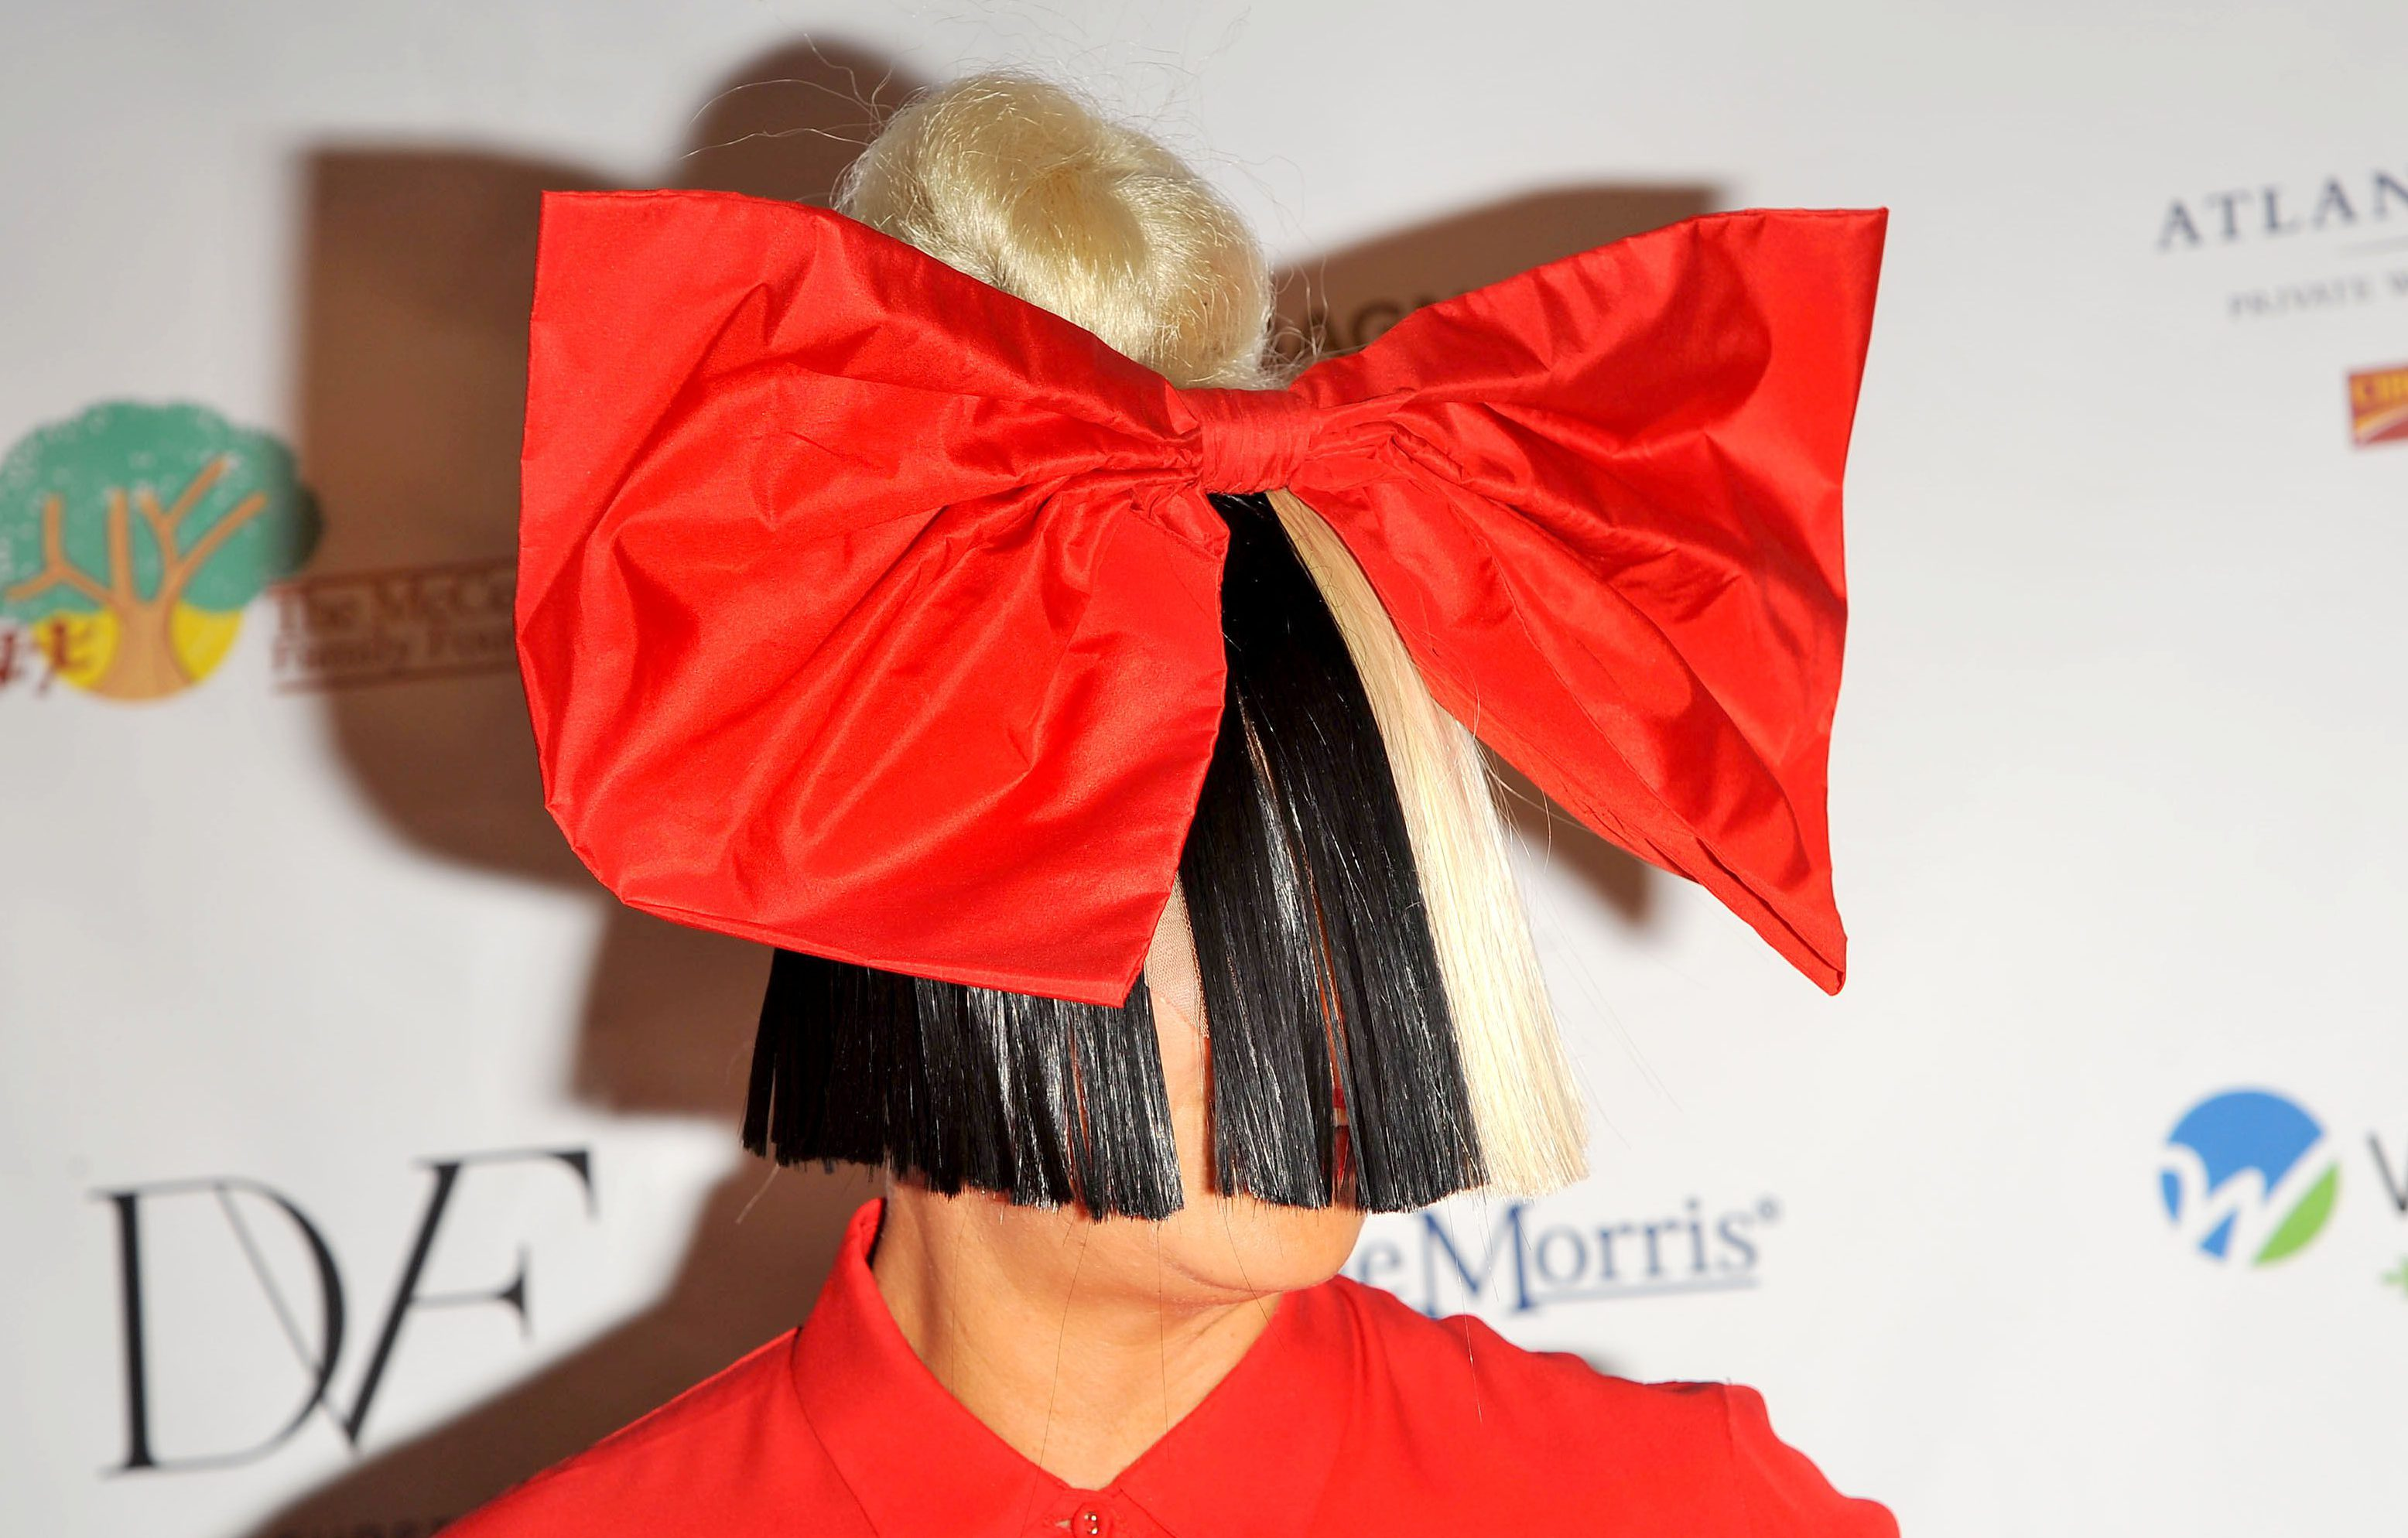 Sia is being sued by angry fans that say her gig was not 'personable' enough